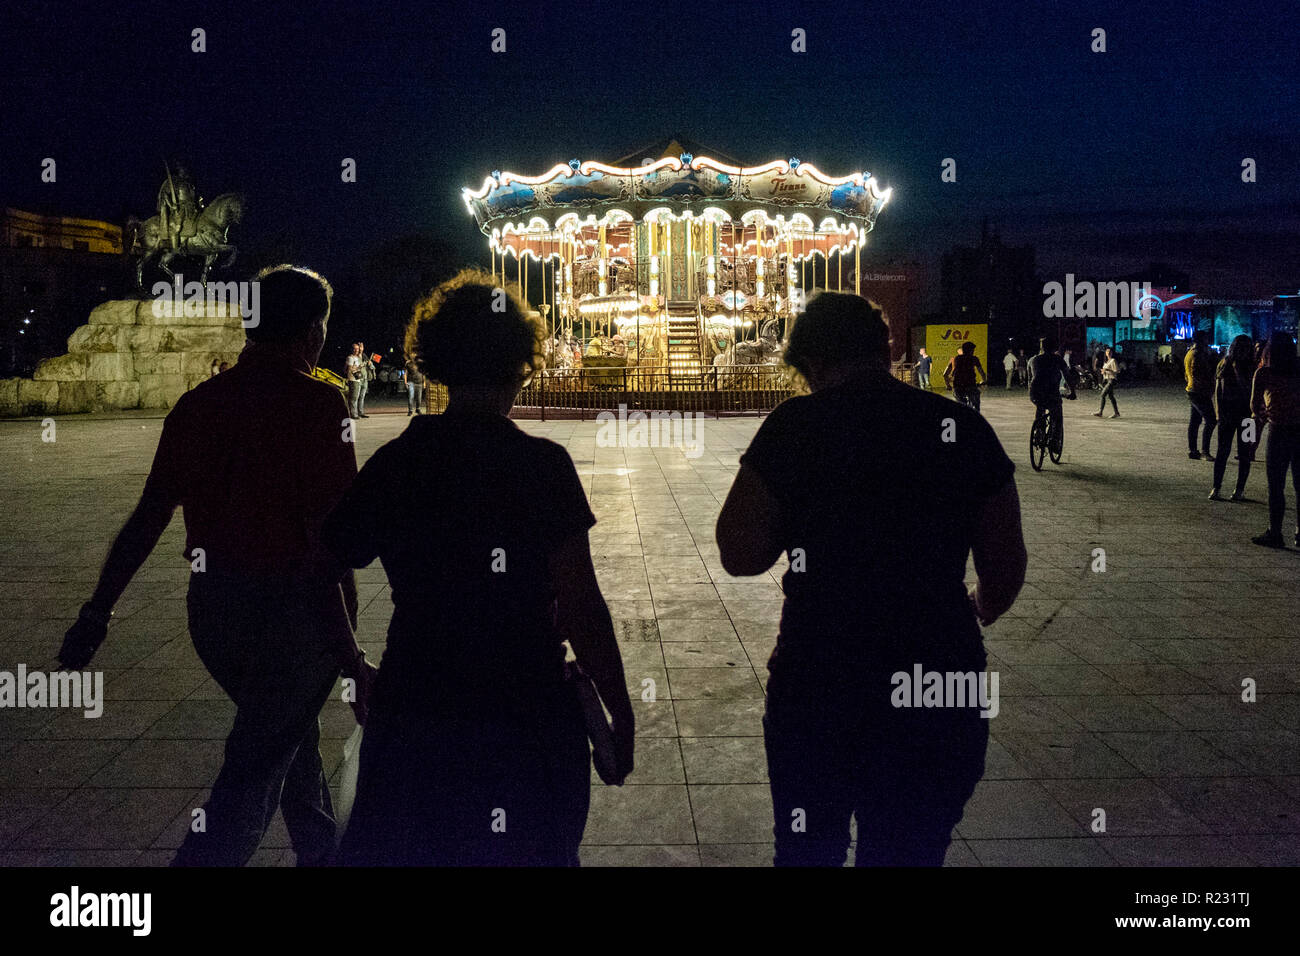 Albania, Tirana, nightlife - Stock Image